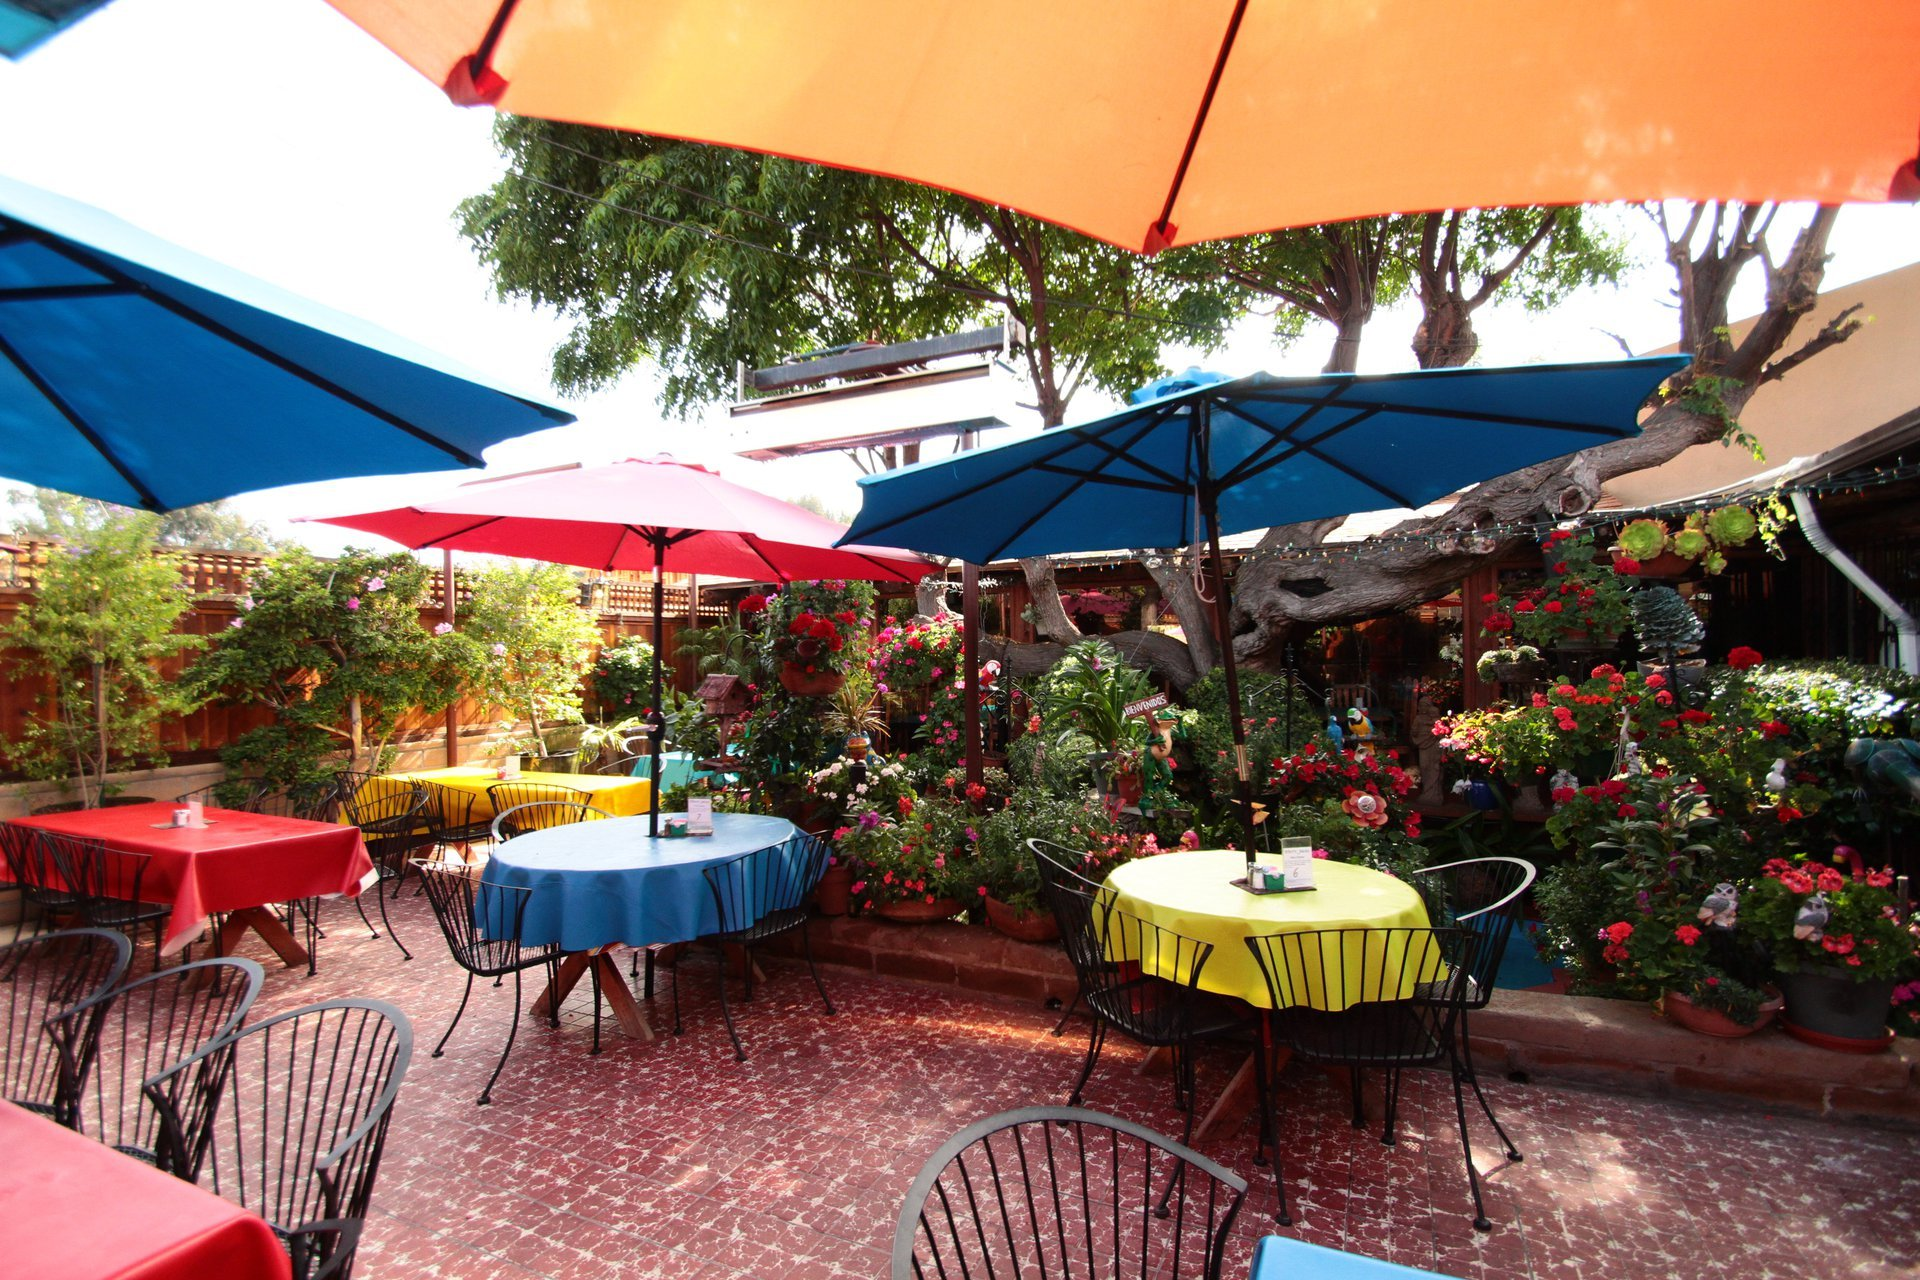 ... El Patio Nightclub Rialto Ca By Patio Mexican Restaurant Home Design  Ideas And Pictures ...